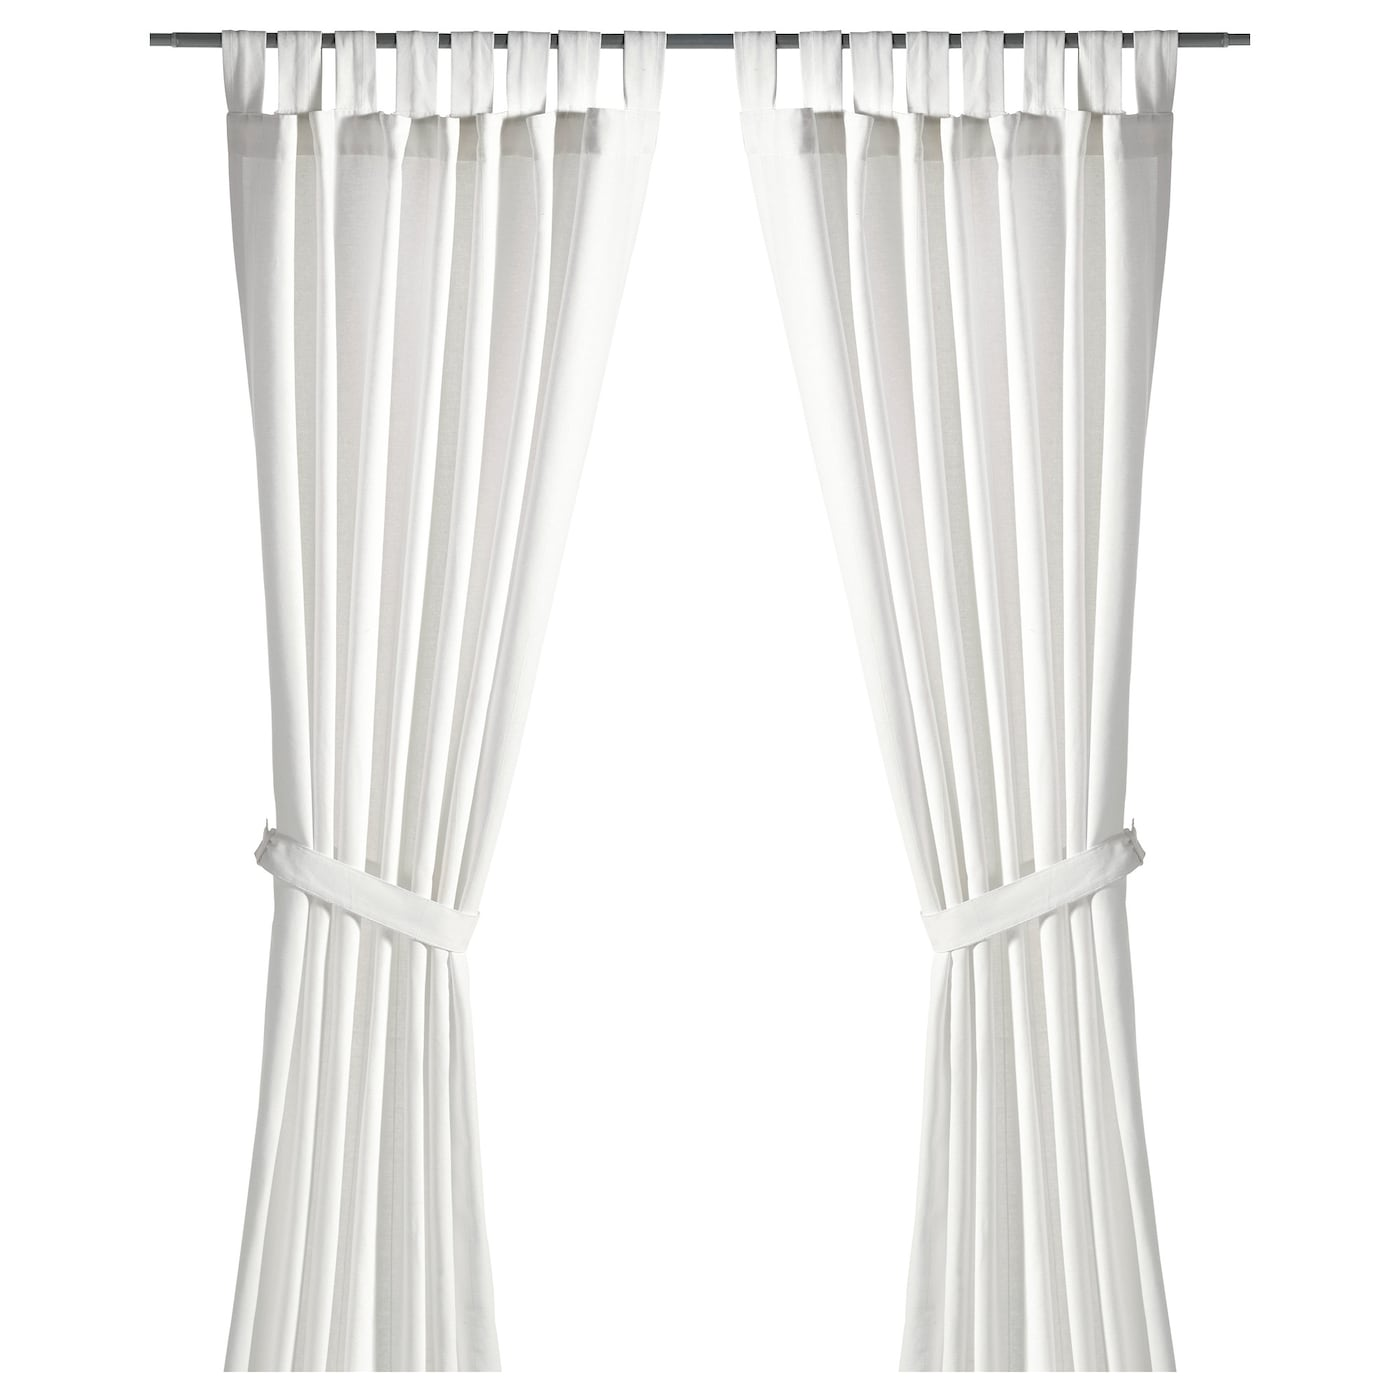 tie product solid curtain cotton home drapes on top garden exclusive over orders overstock fabrics shipping free